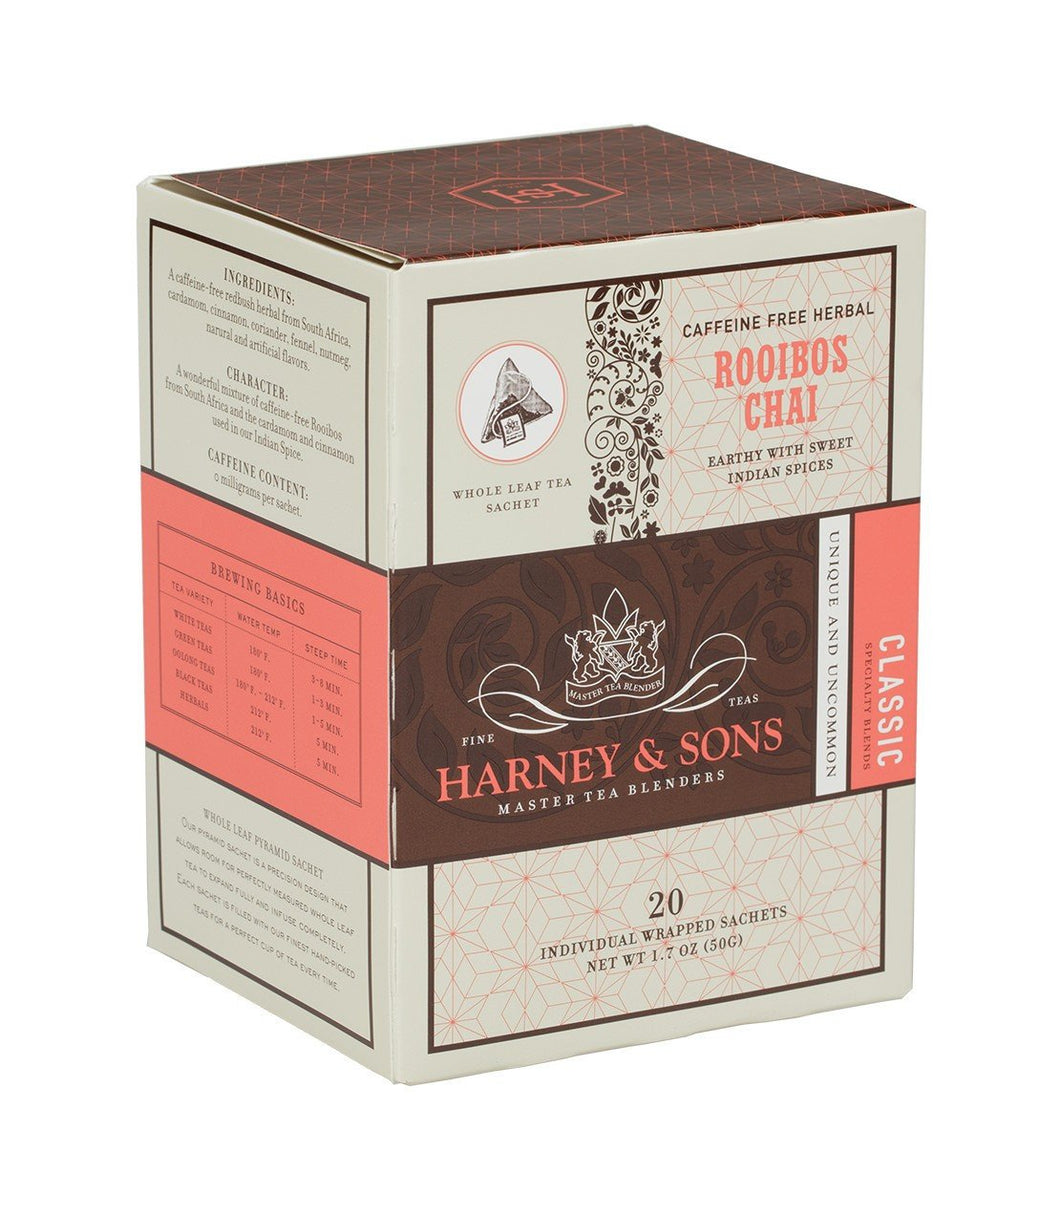 Harney & Sons - Rooibos Chai [20 individually wrapped sachets]